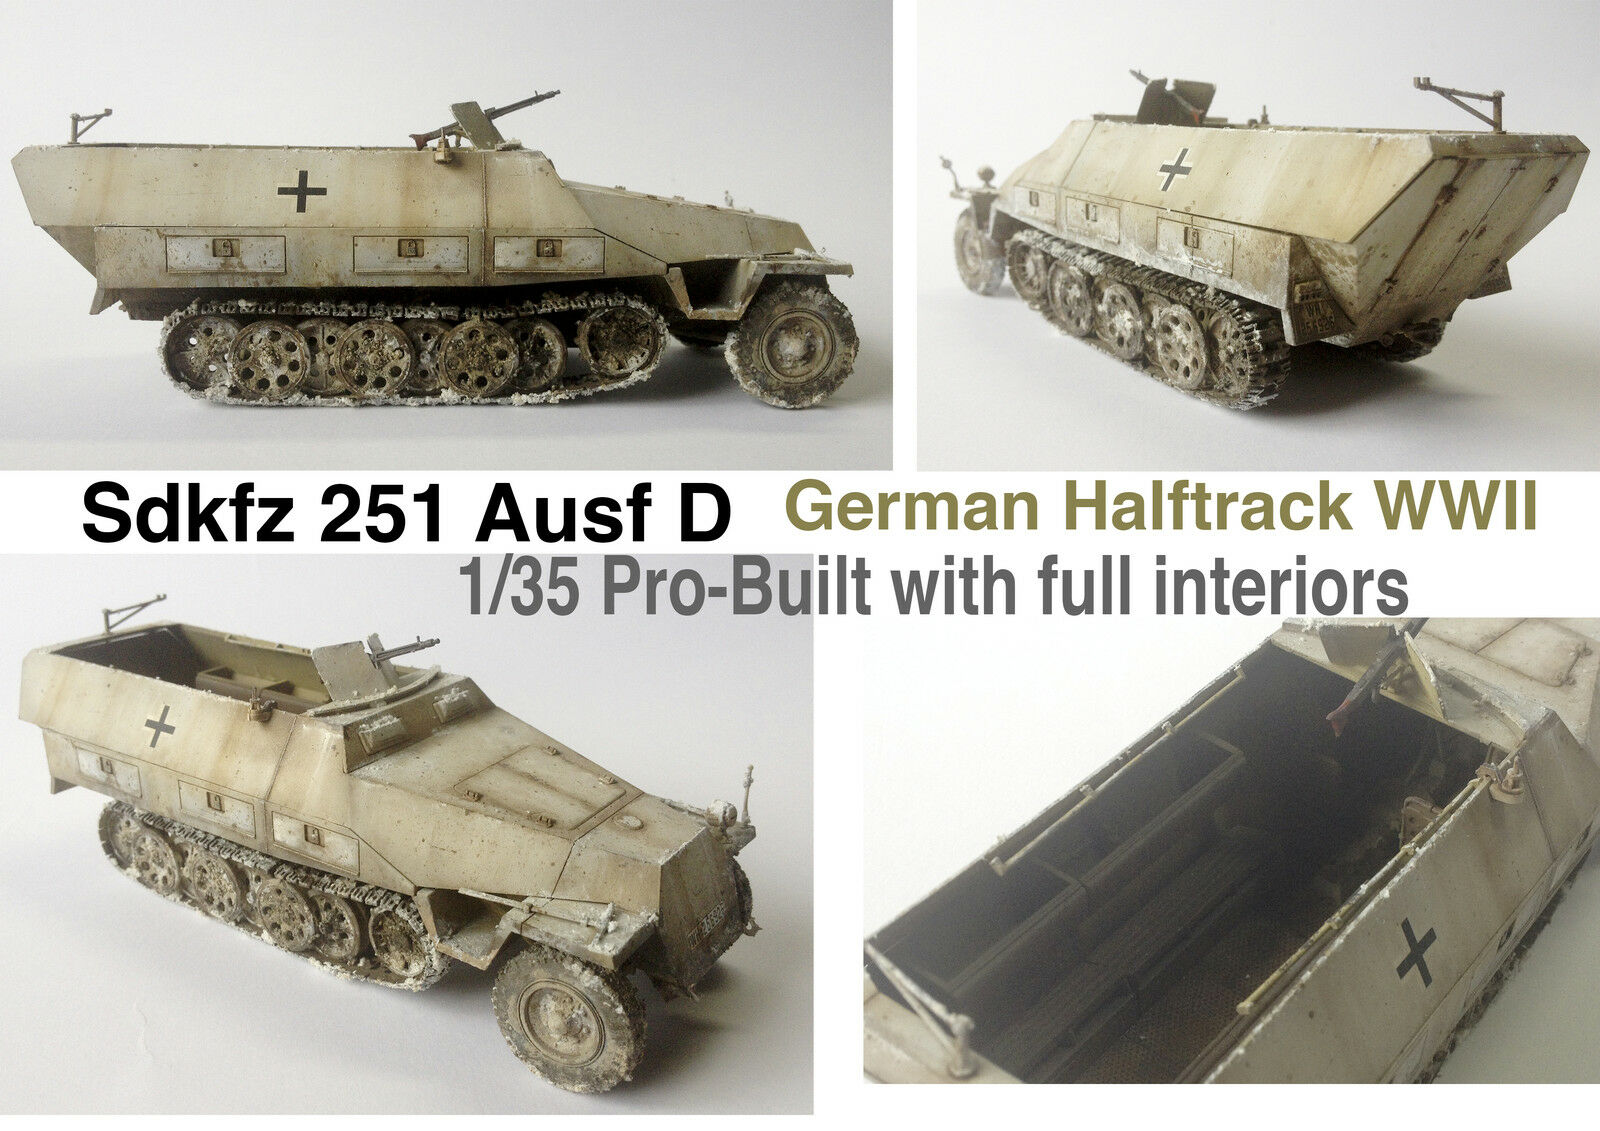 Sdkfz 251 Ausf D German Halftrack WWII 1 35 Pro-Built with full interiors